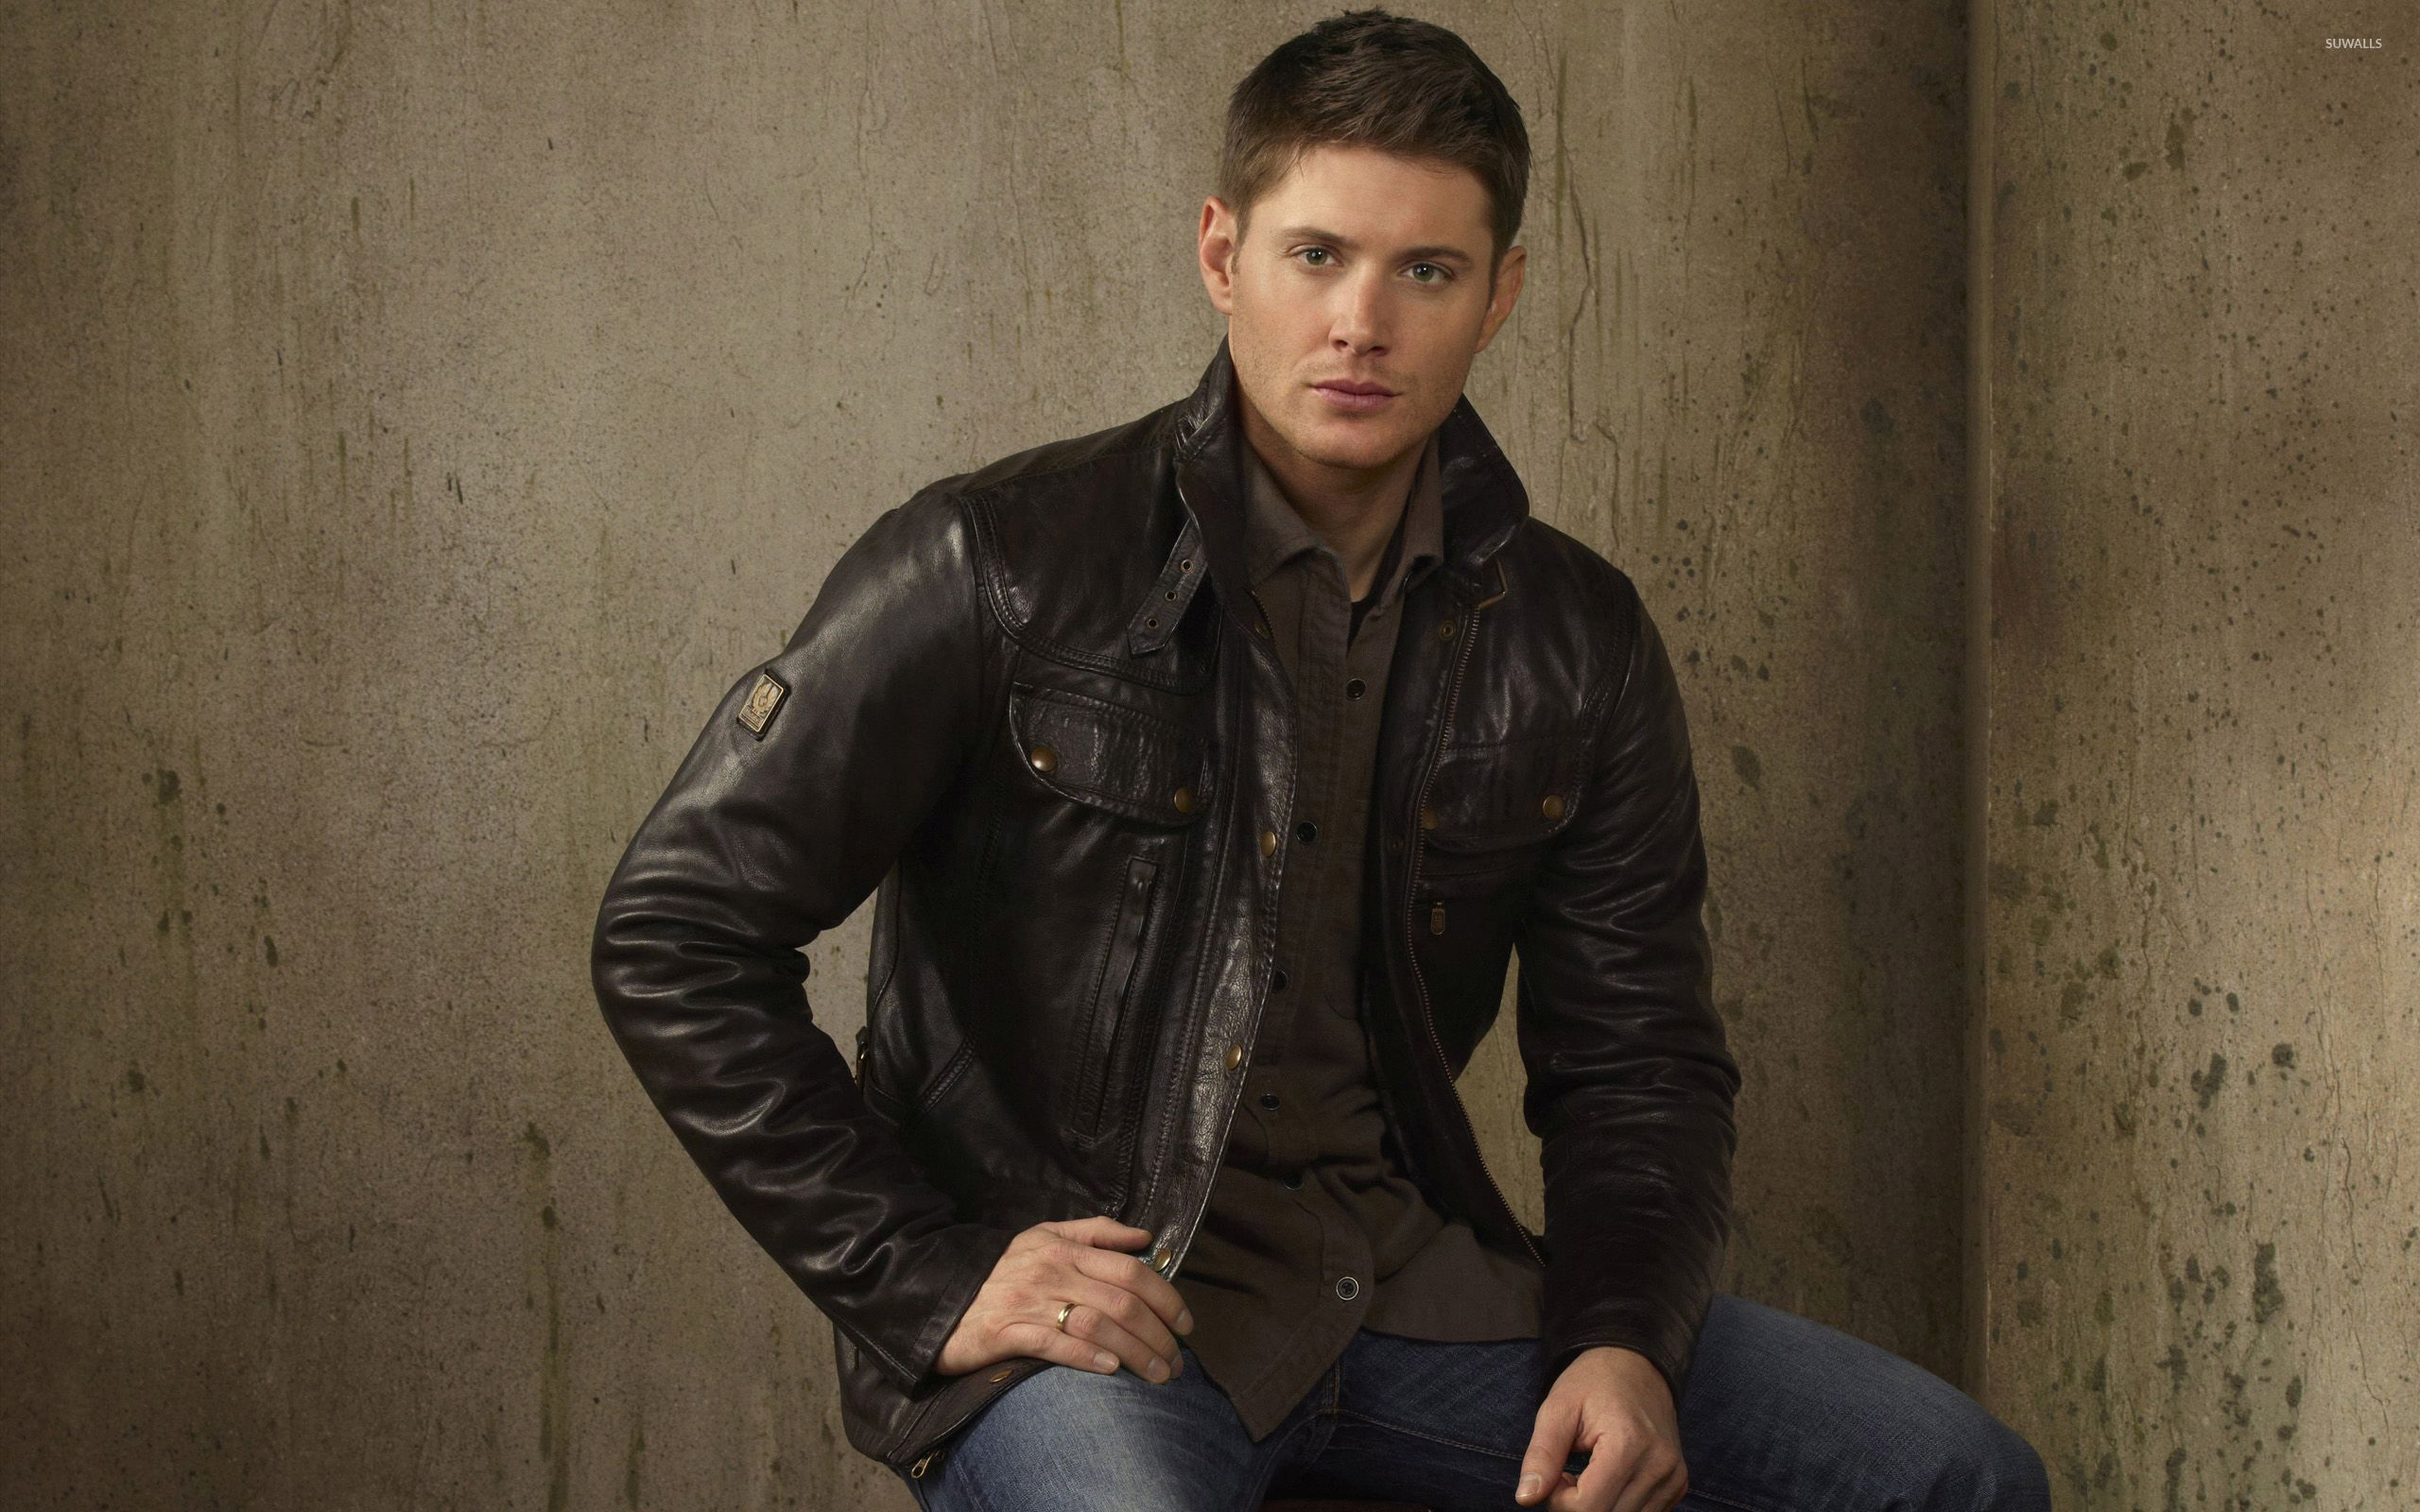 Jensen Ackles With A Leather Jacket Wallpaper